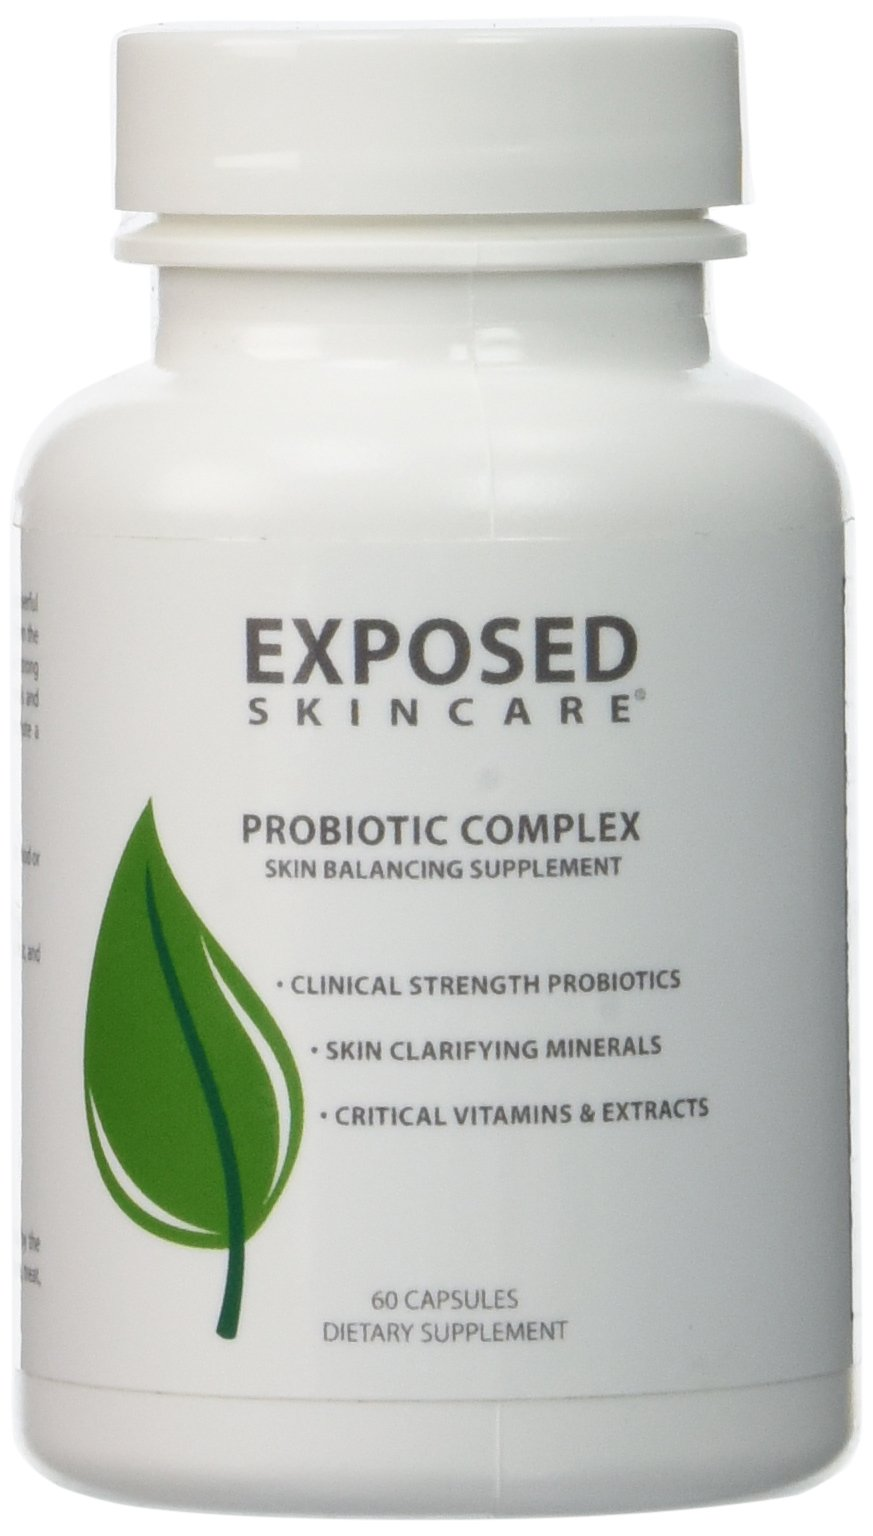 Probiotics, Fight Acne from the Inside, Probiotic Complex Pills, Keep Your Immune System Healthy by Exposed Skin Care 60 count